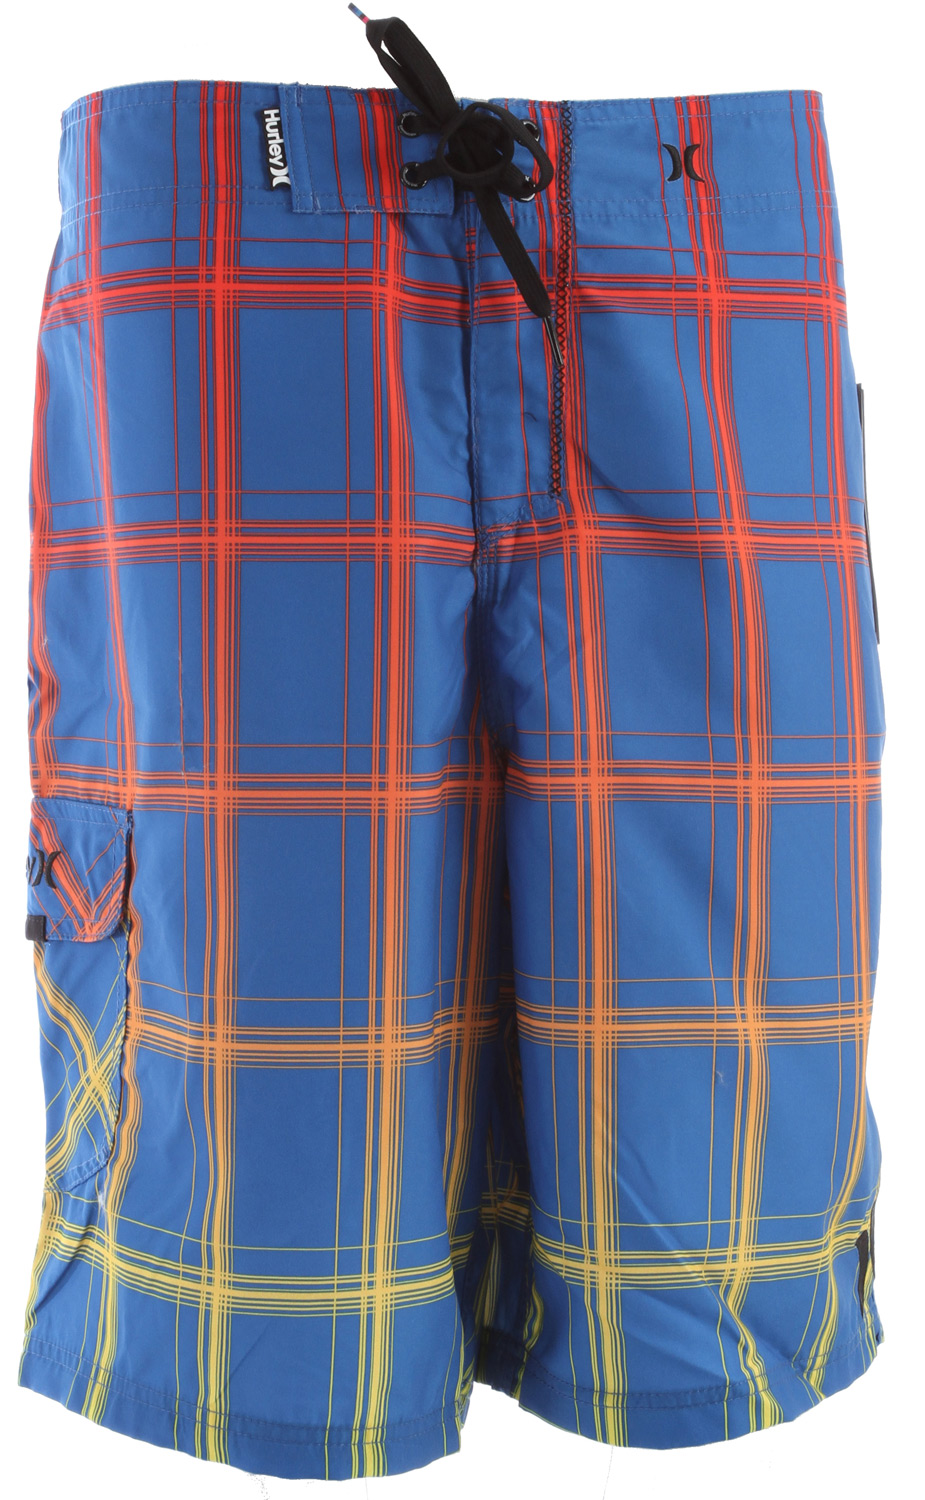 "Surf Key Features of the Hurley Puerto Rico Blend Boardshorts: 22"" Outseam Recycled Supersuede Patented EZ fly closure, embroidered logos, patch pocket with Velcro flap. - $36.95"